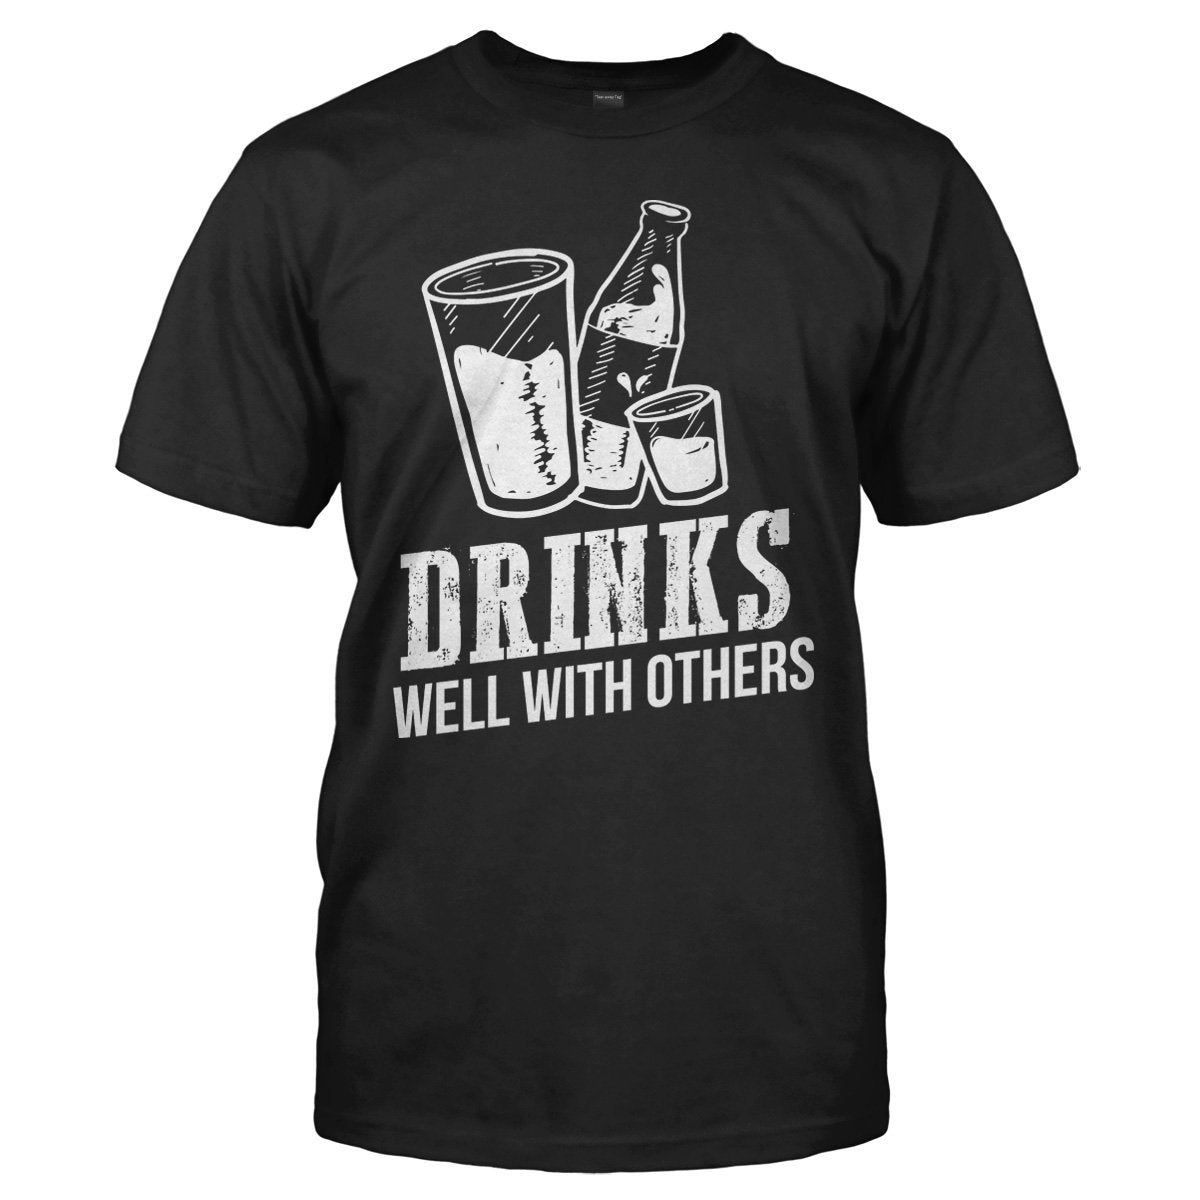 Drinks Well With Others - T Shirt